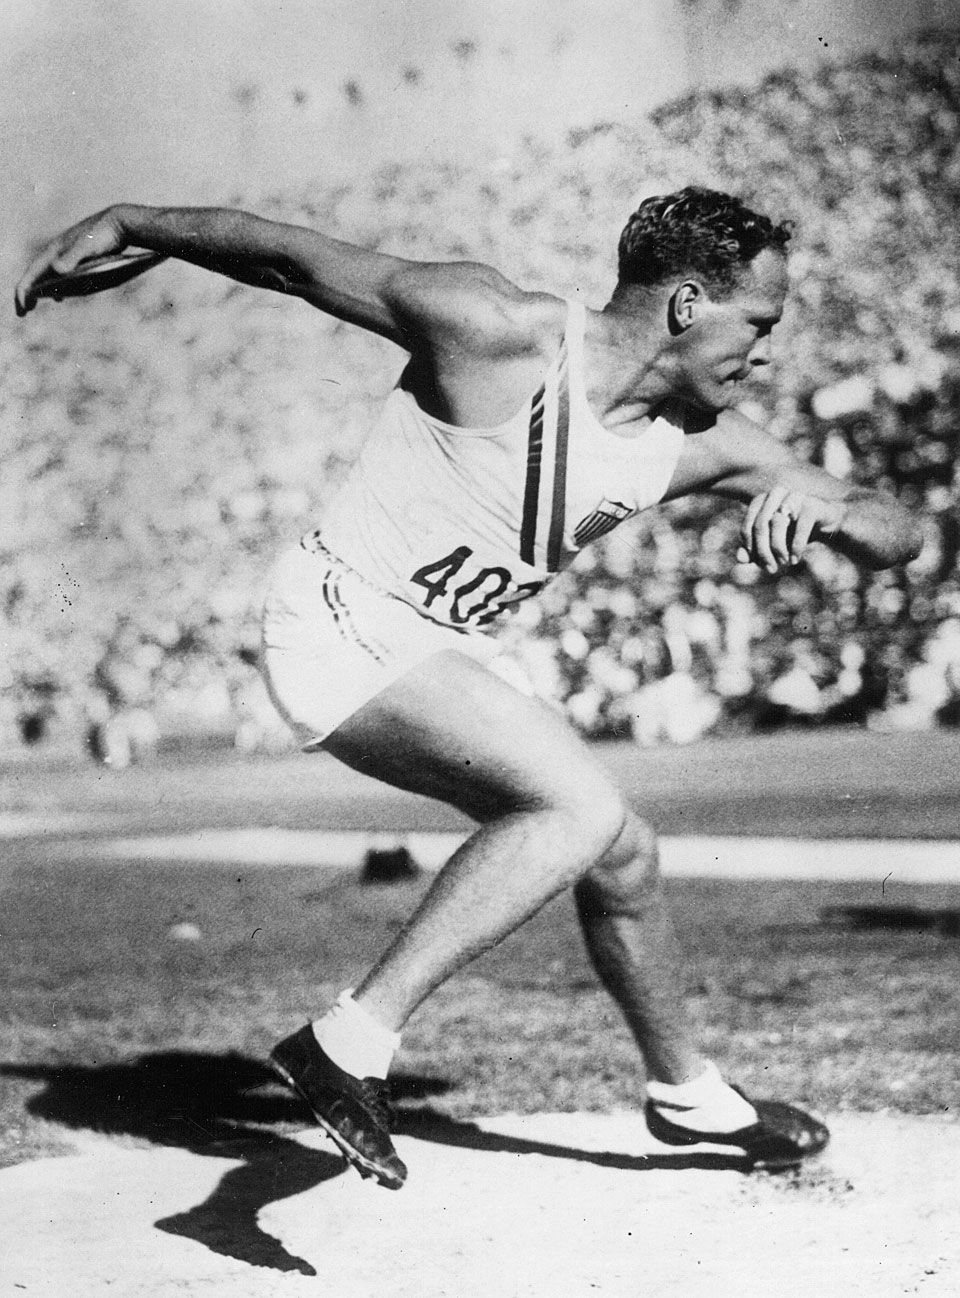 Los Angeles 1932 Photos Best Olympic Photos Highlights Olympic Hero Athlete Olympic Games